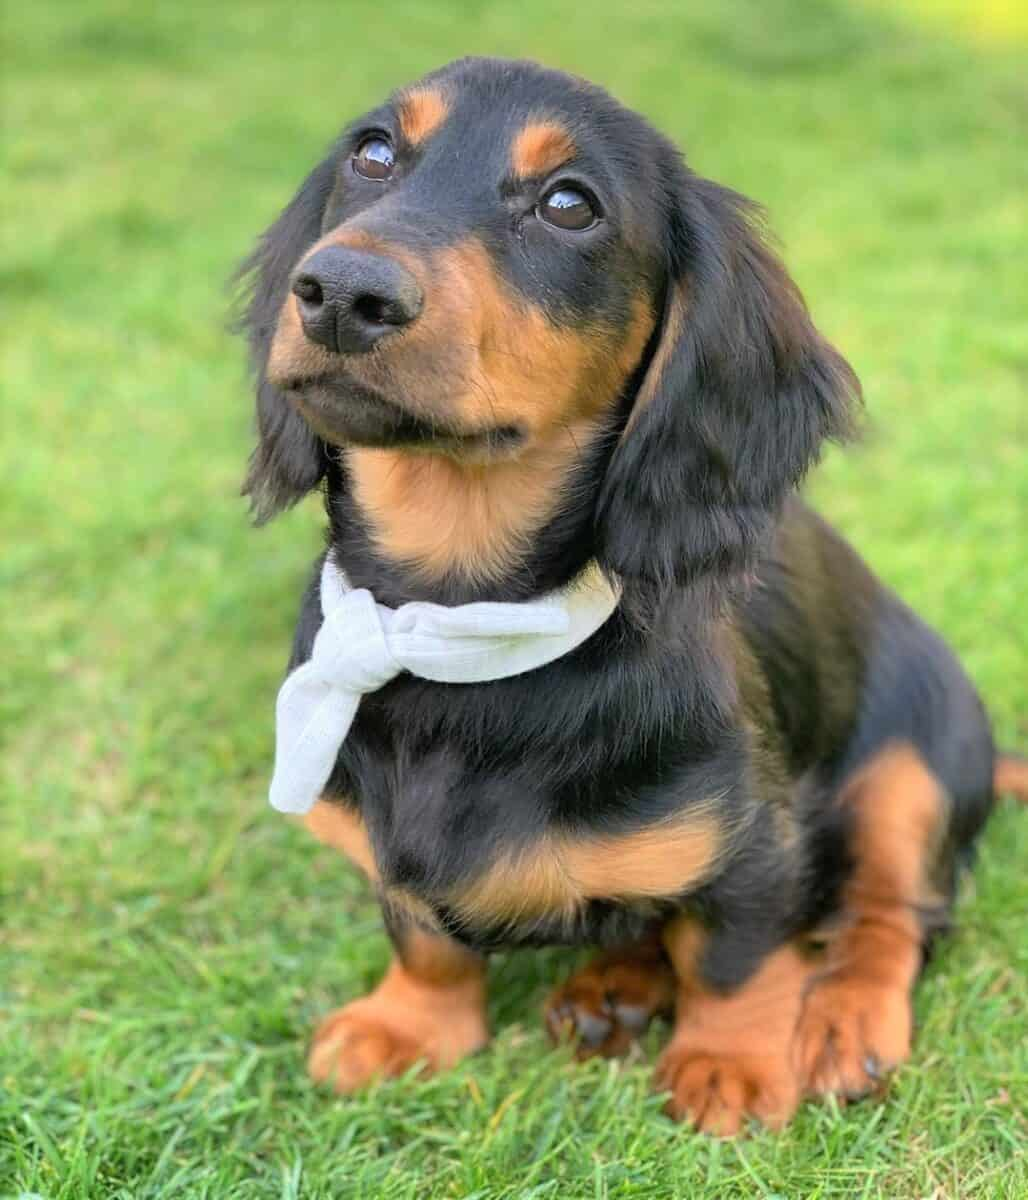 Black and Tan Long-Haired Miniature Dachshund